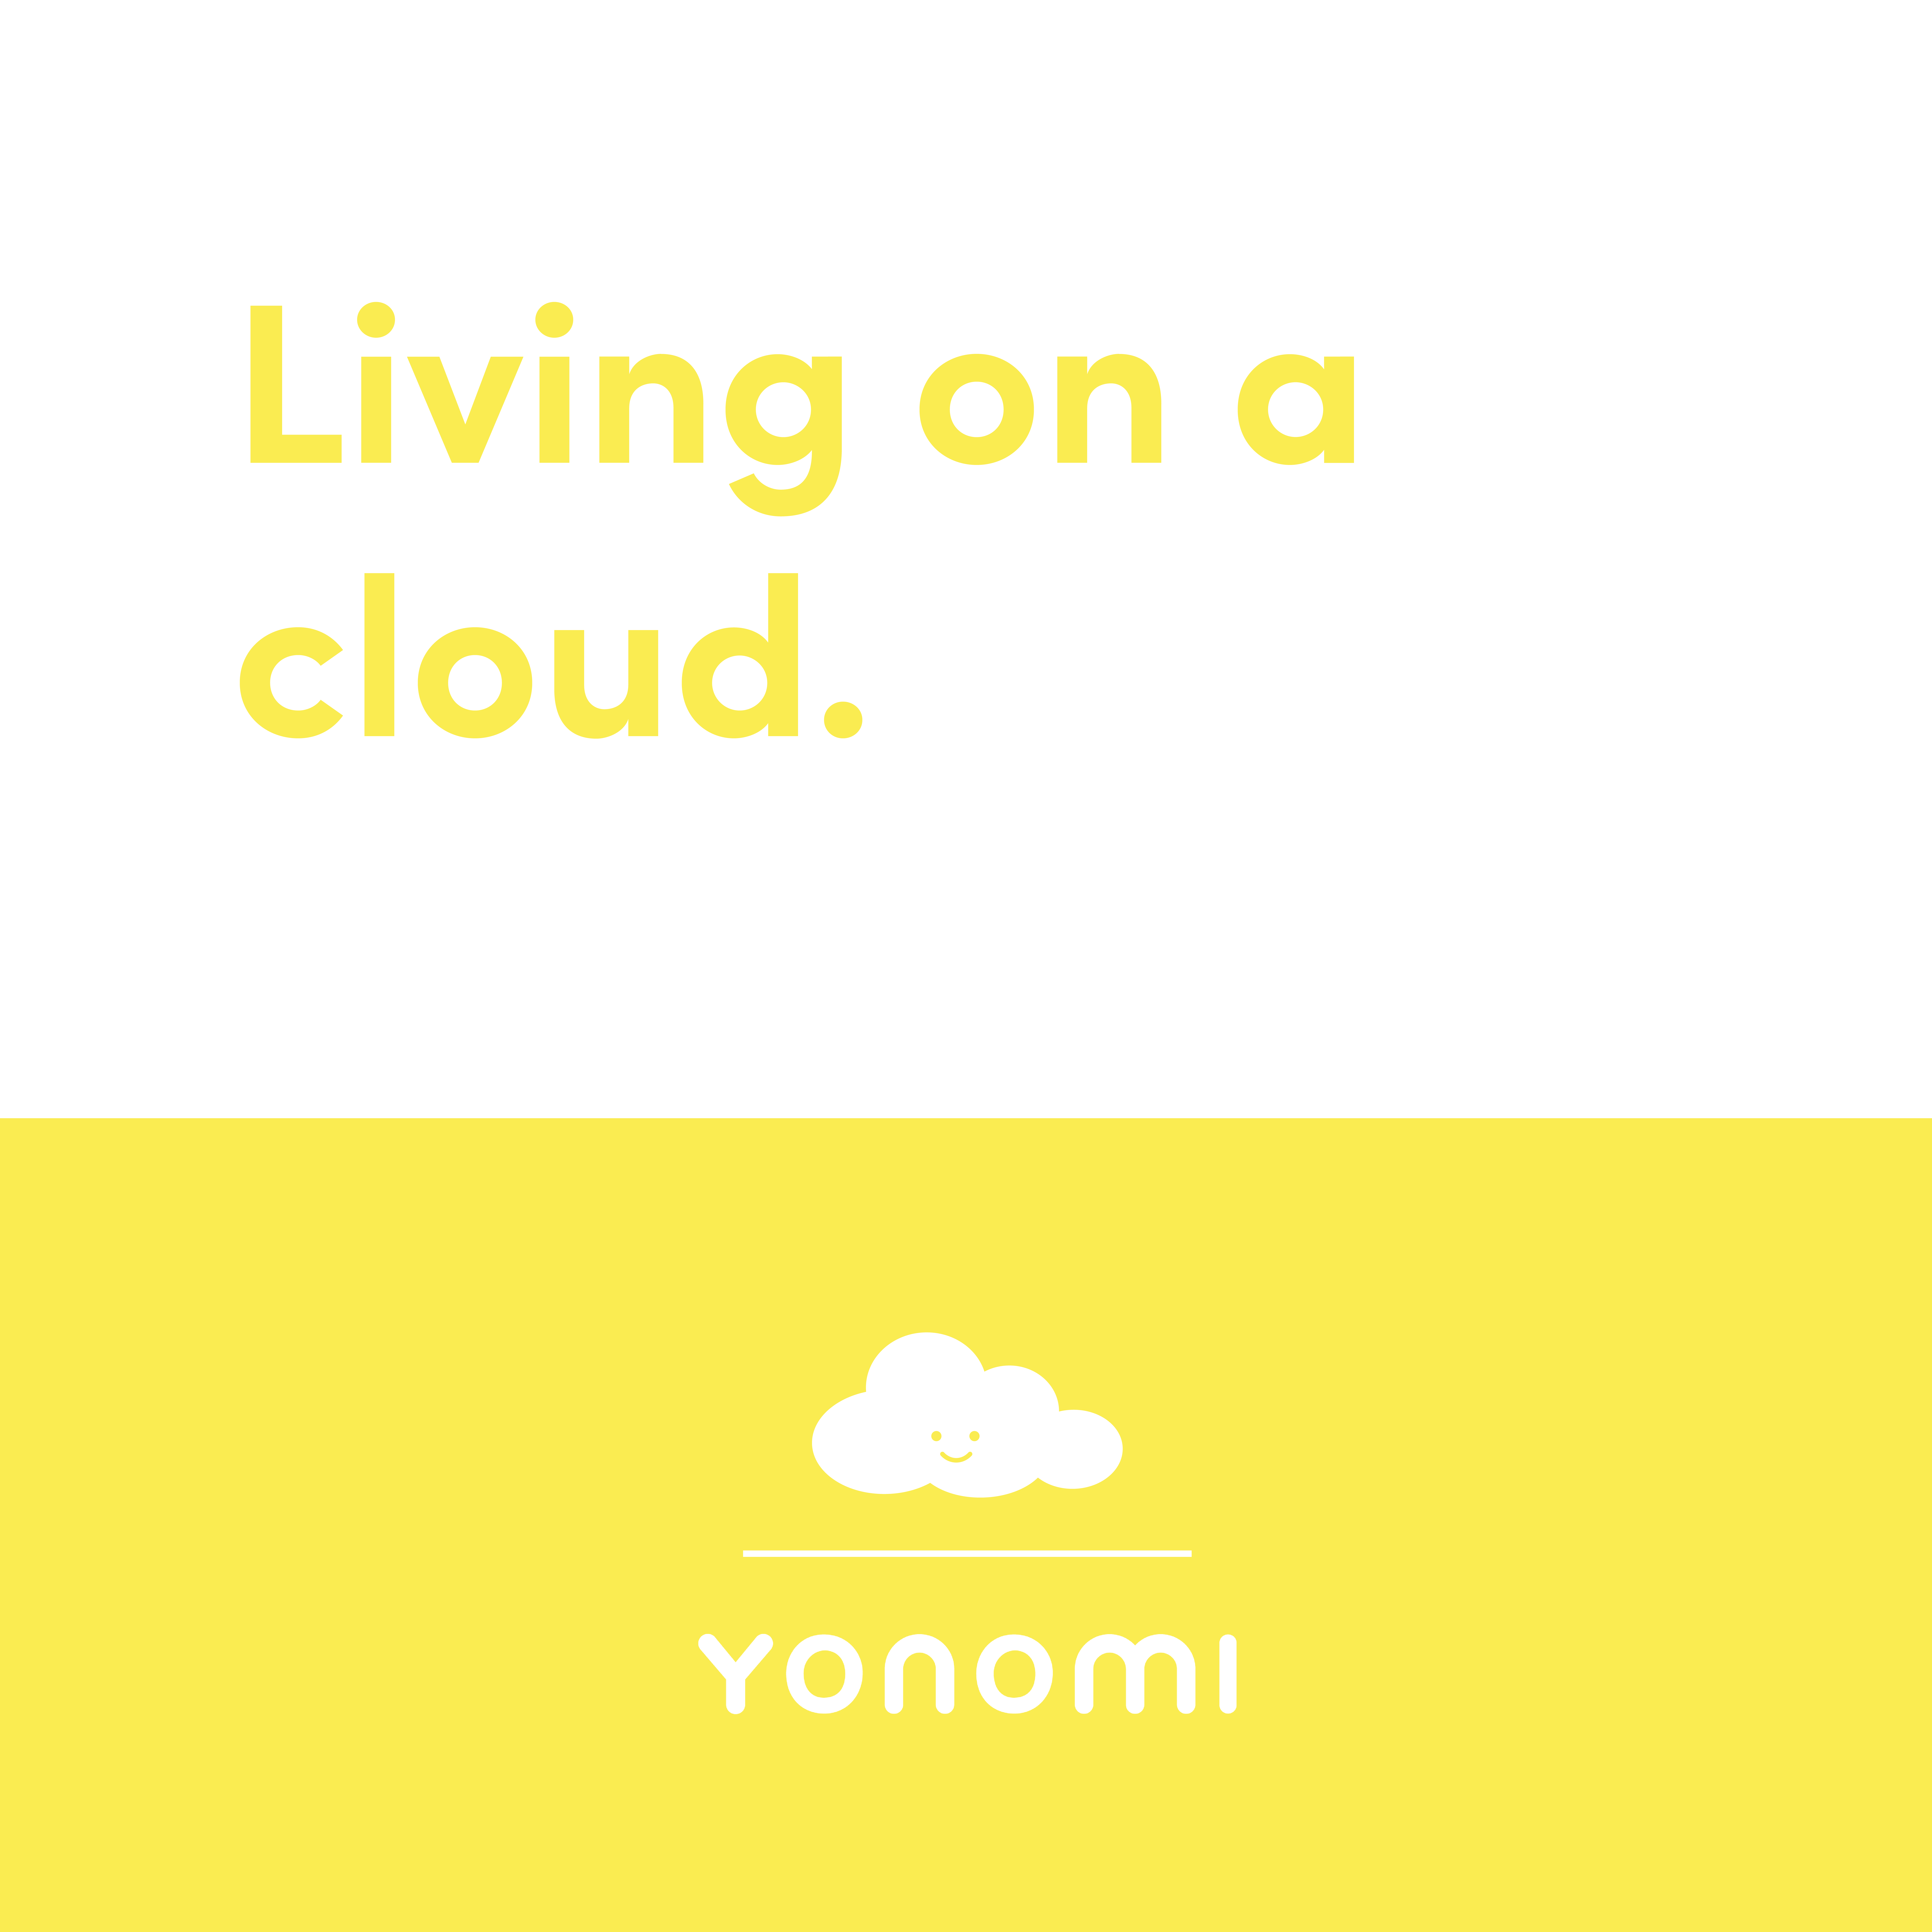 yonomi text template-01.png